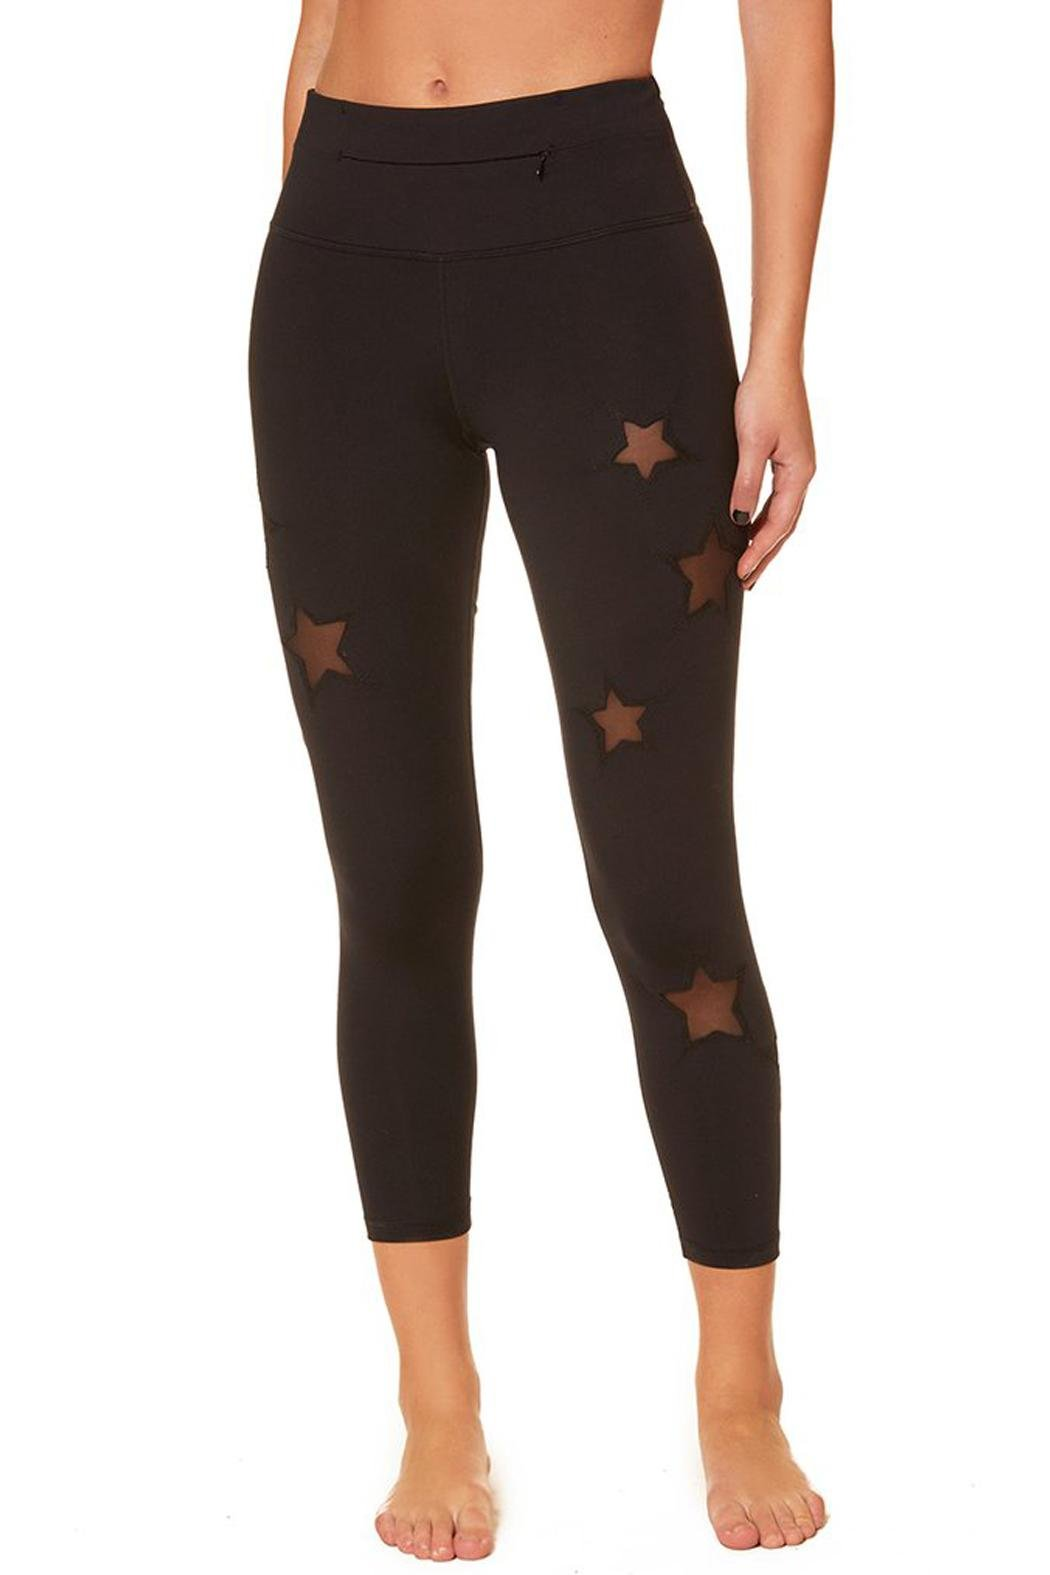 Handler 7/8th Leggings